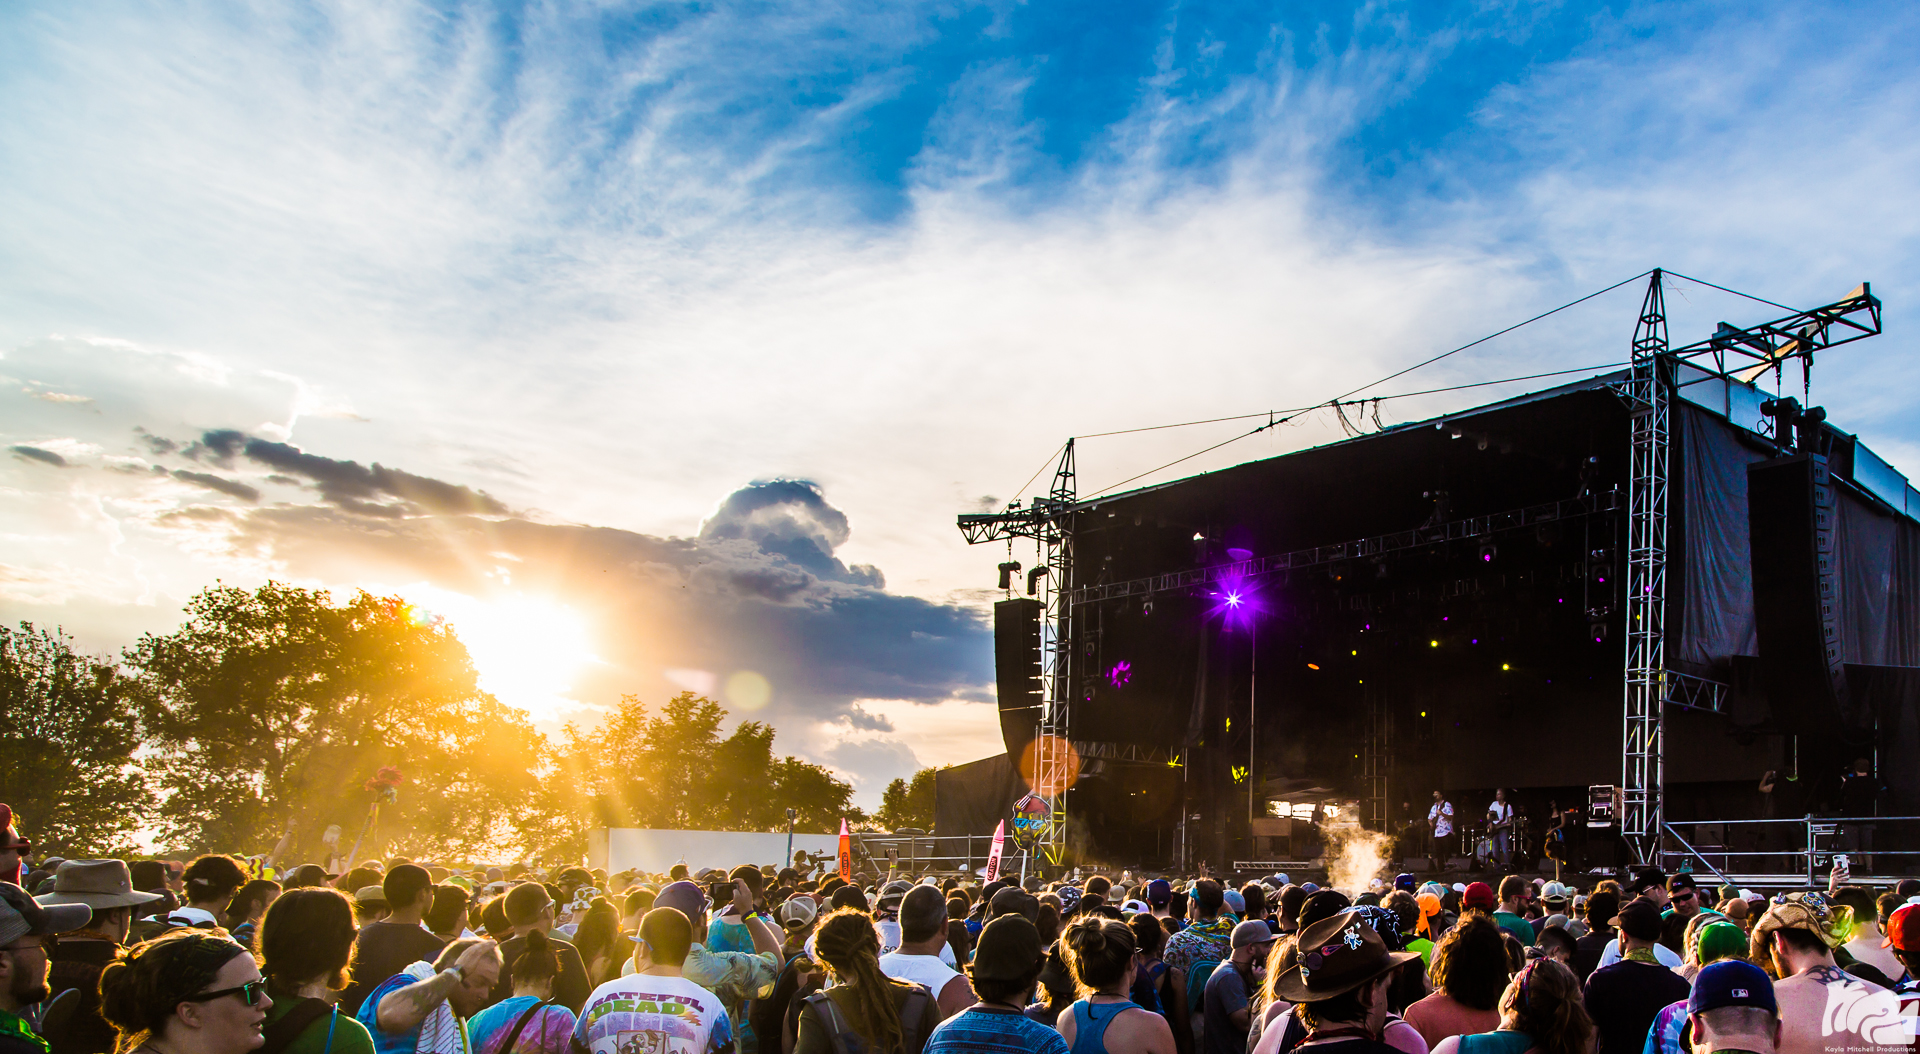 Summer Camp Music Festival 2018 – A Collective of Music, Art, & Culture!